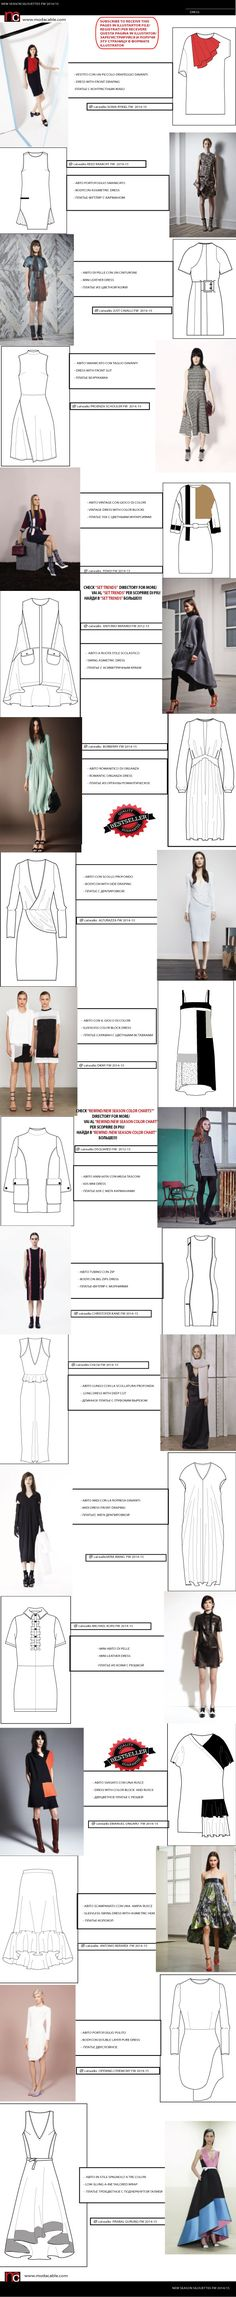 New Season Silhouettes FW Flat Drawings, Flat Sketches, Technical Drawings, Fashion Sketchbook, Fashion Sketches, Fashion Illustrations, Drawing Fashion, Clothing Patterns, Dress Patterns